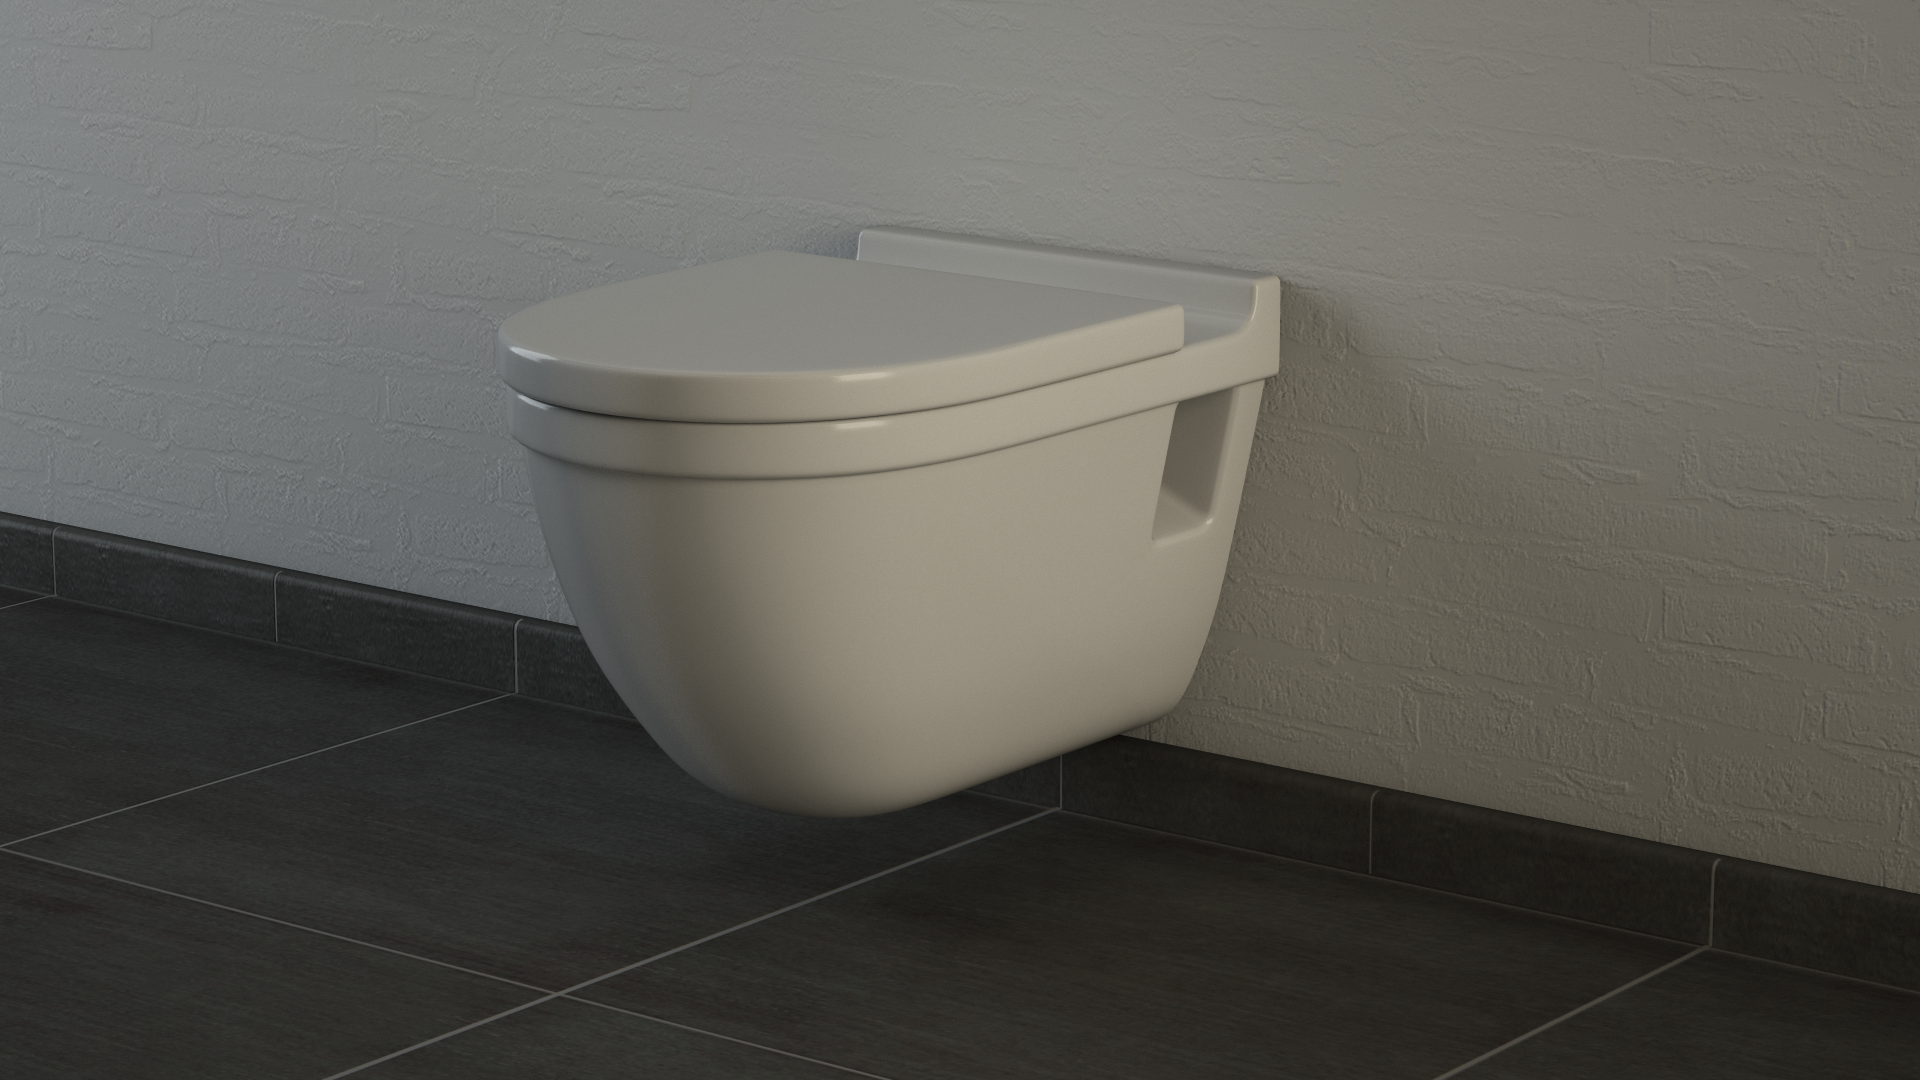 duravit starck toilet by thonbo duravit starck toilet by thonbo